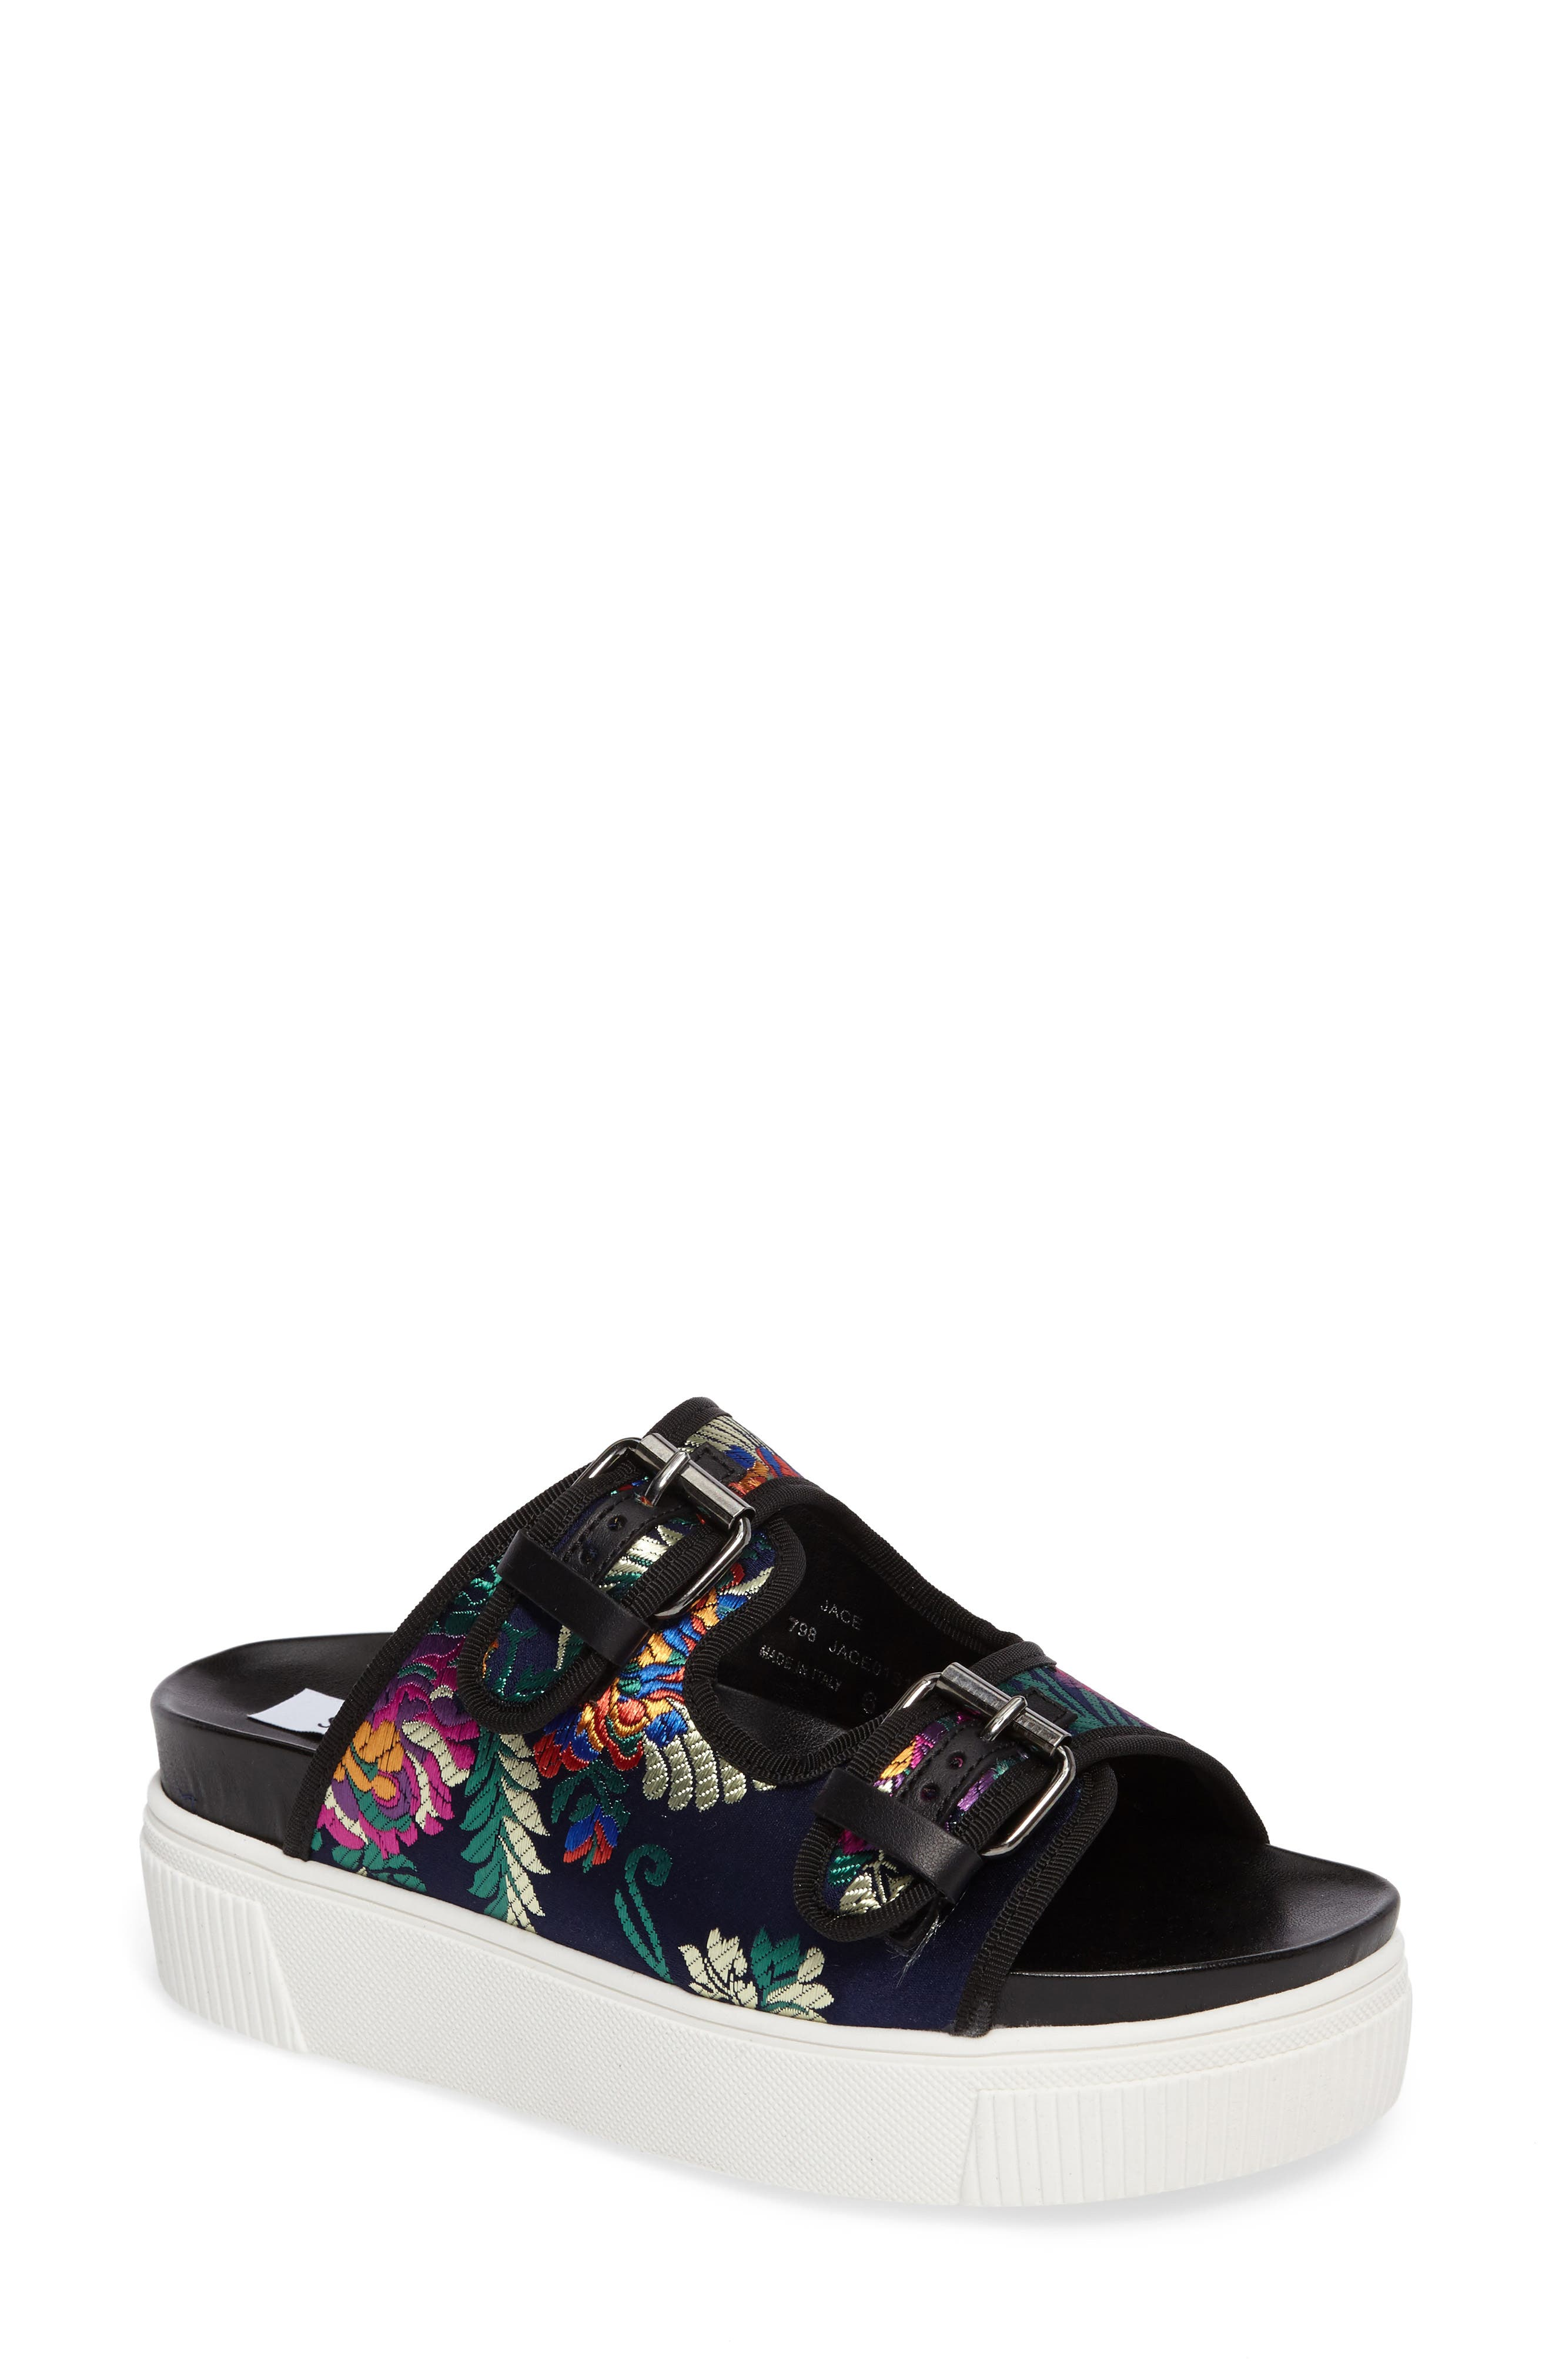 Steve Madden Jace Embroidered Platform Slide Sandal (Women)